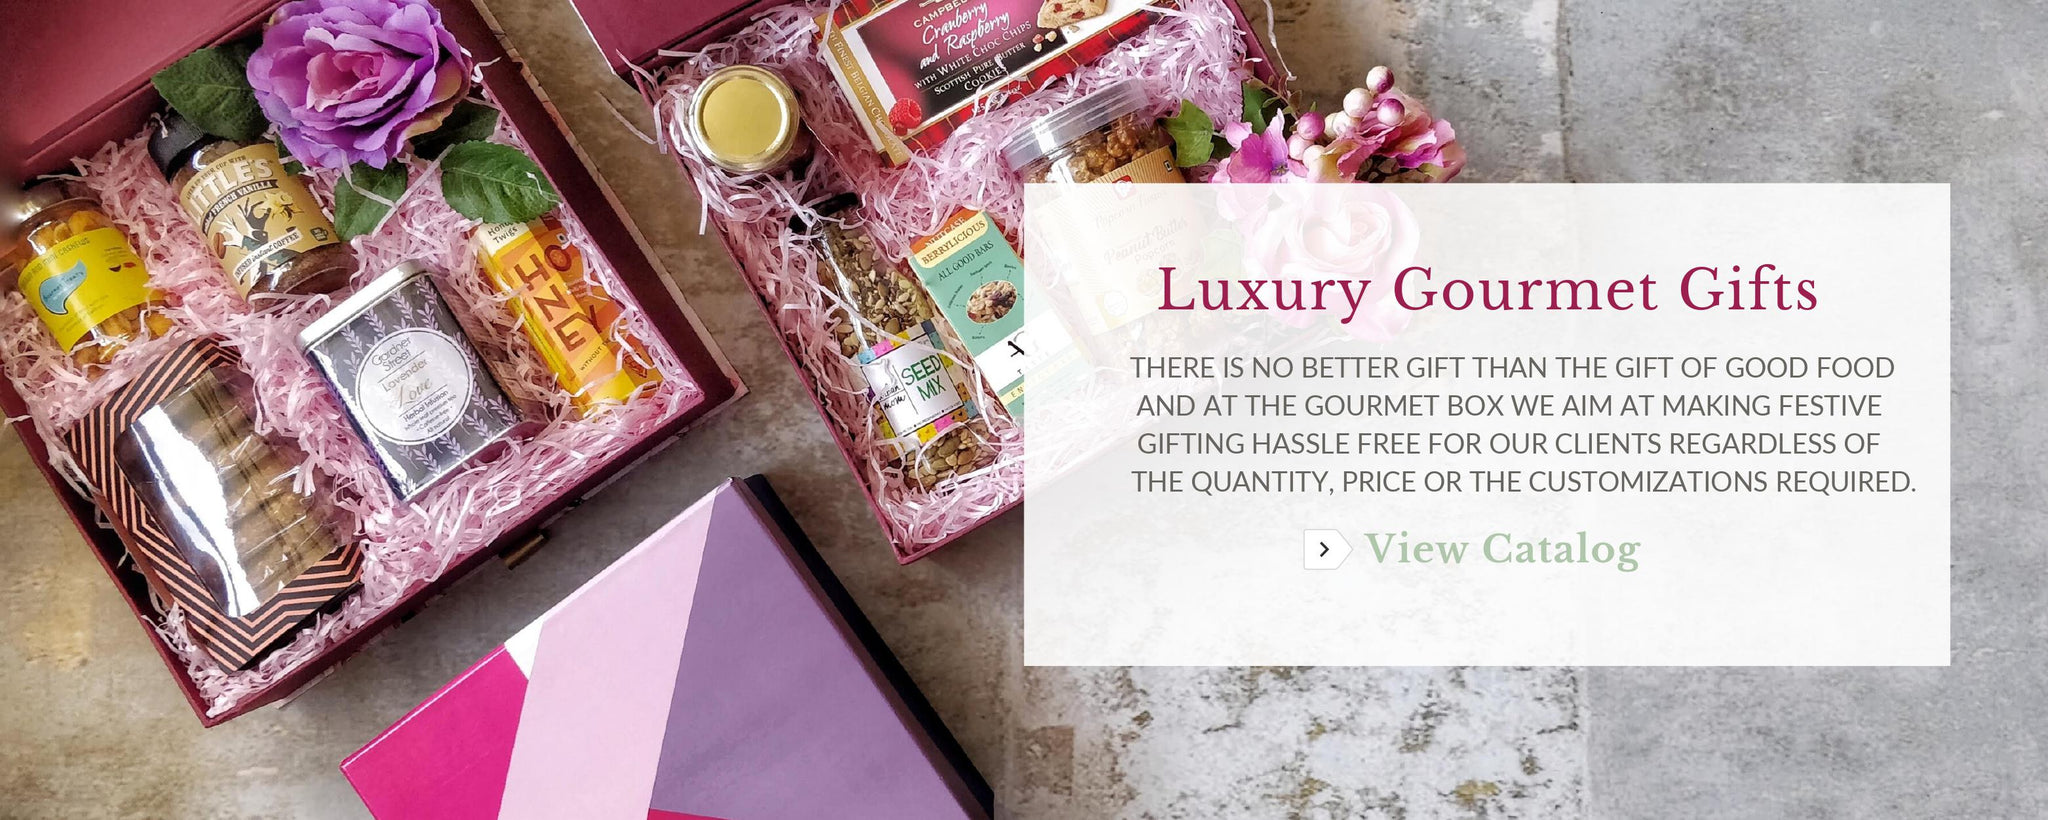 Corporate Gifts - The Gourmet Box